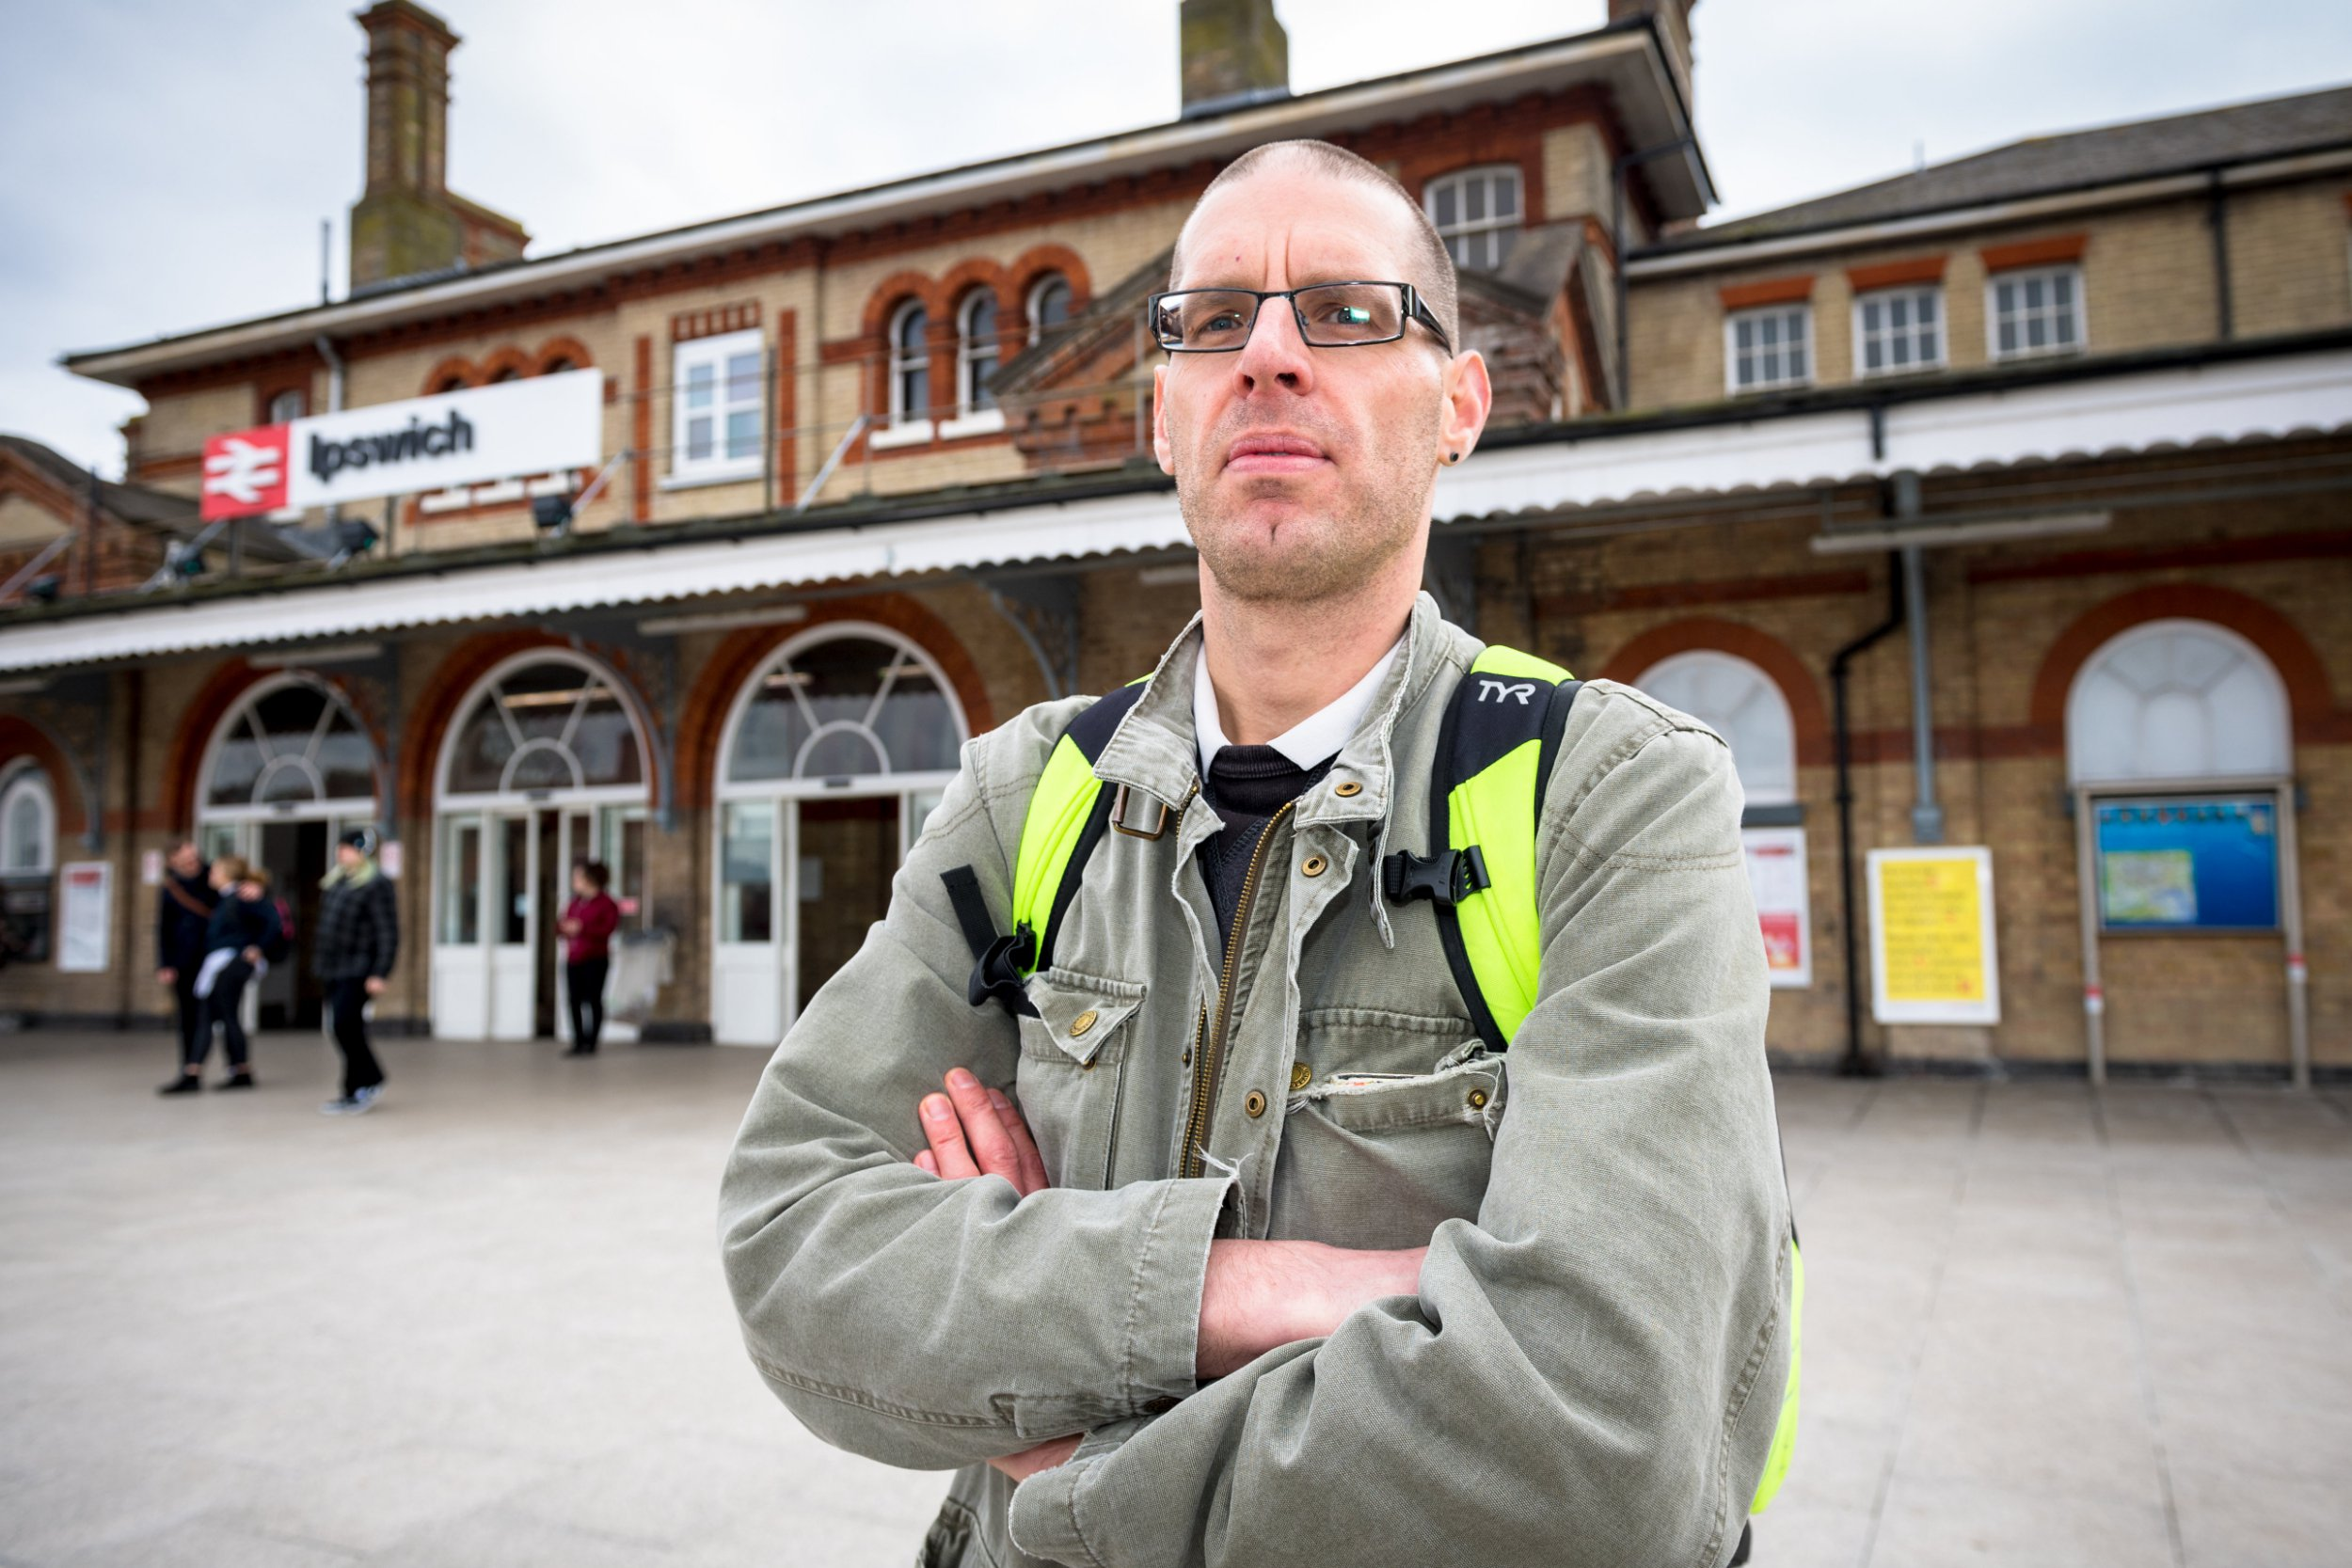 Seph Pochin, 45 who took legal action against Greater Anglia trains after being held up 183 times in a year.See Masons copy MNTRAIN: A commuter has sued a rail firm after regular delays left him repeatedly late for work. Ecologist Seph Pochin, 45, took legal action against Greater Anglia after being held up 183 times in a year. He has made the 32-mile journey around 550 times in the last year - travelling 32 miles from his home in Halesworth, Suffolk, to his office in Ipswich five days a week.